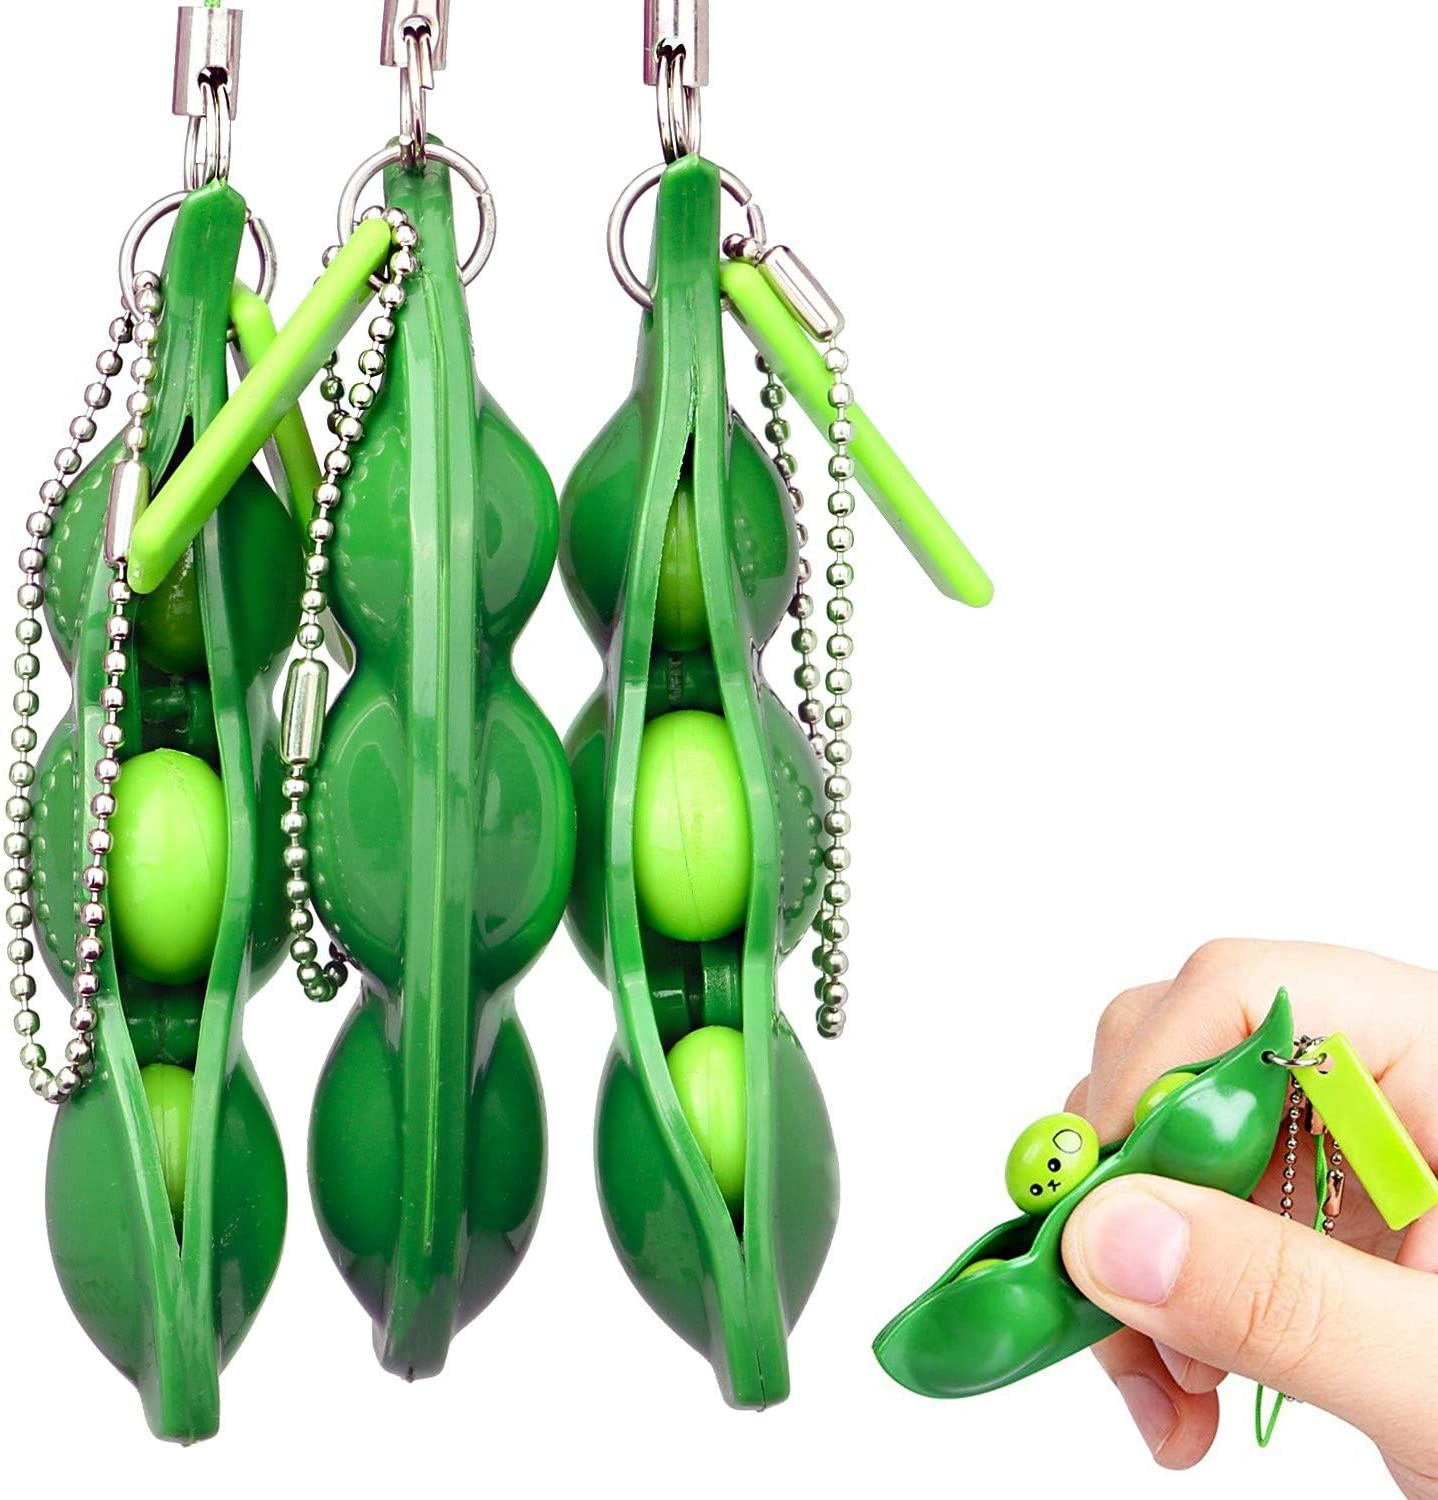 Squishy Toys Keychain Bean Peas Gifts Stress Relief Simple-Dimple 1-5pcs Creative Pop img3